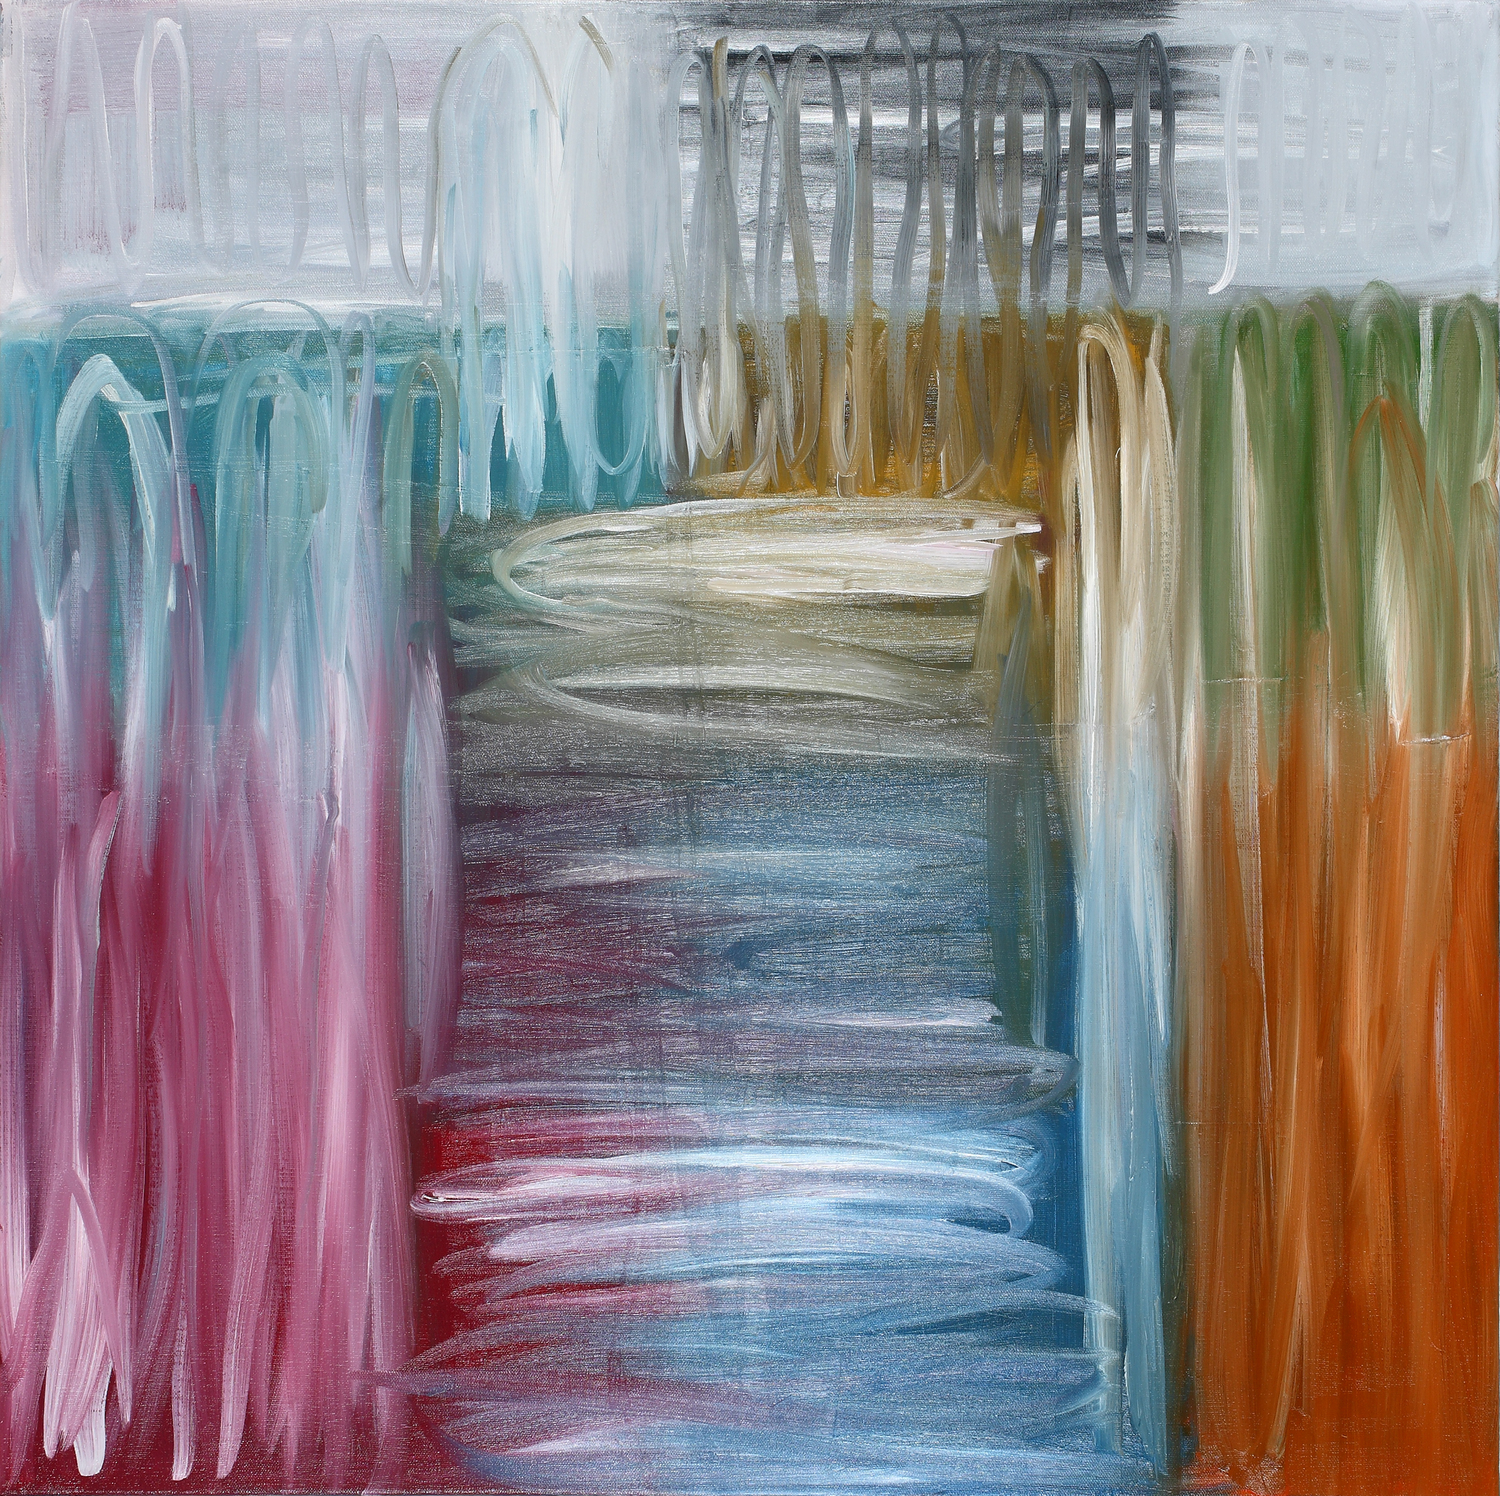 Binomial Cube IV  30x 30inches  Oil on canvas